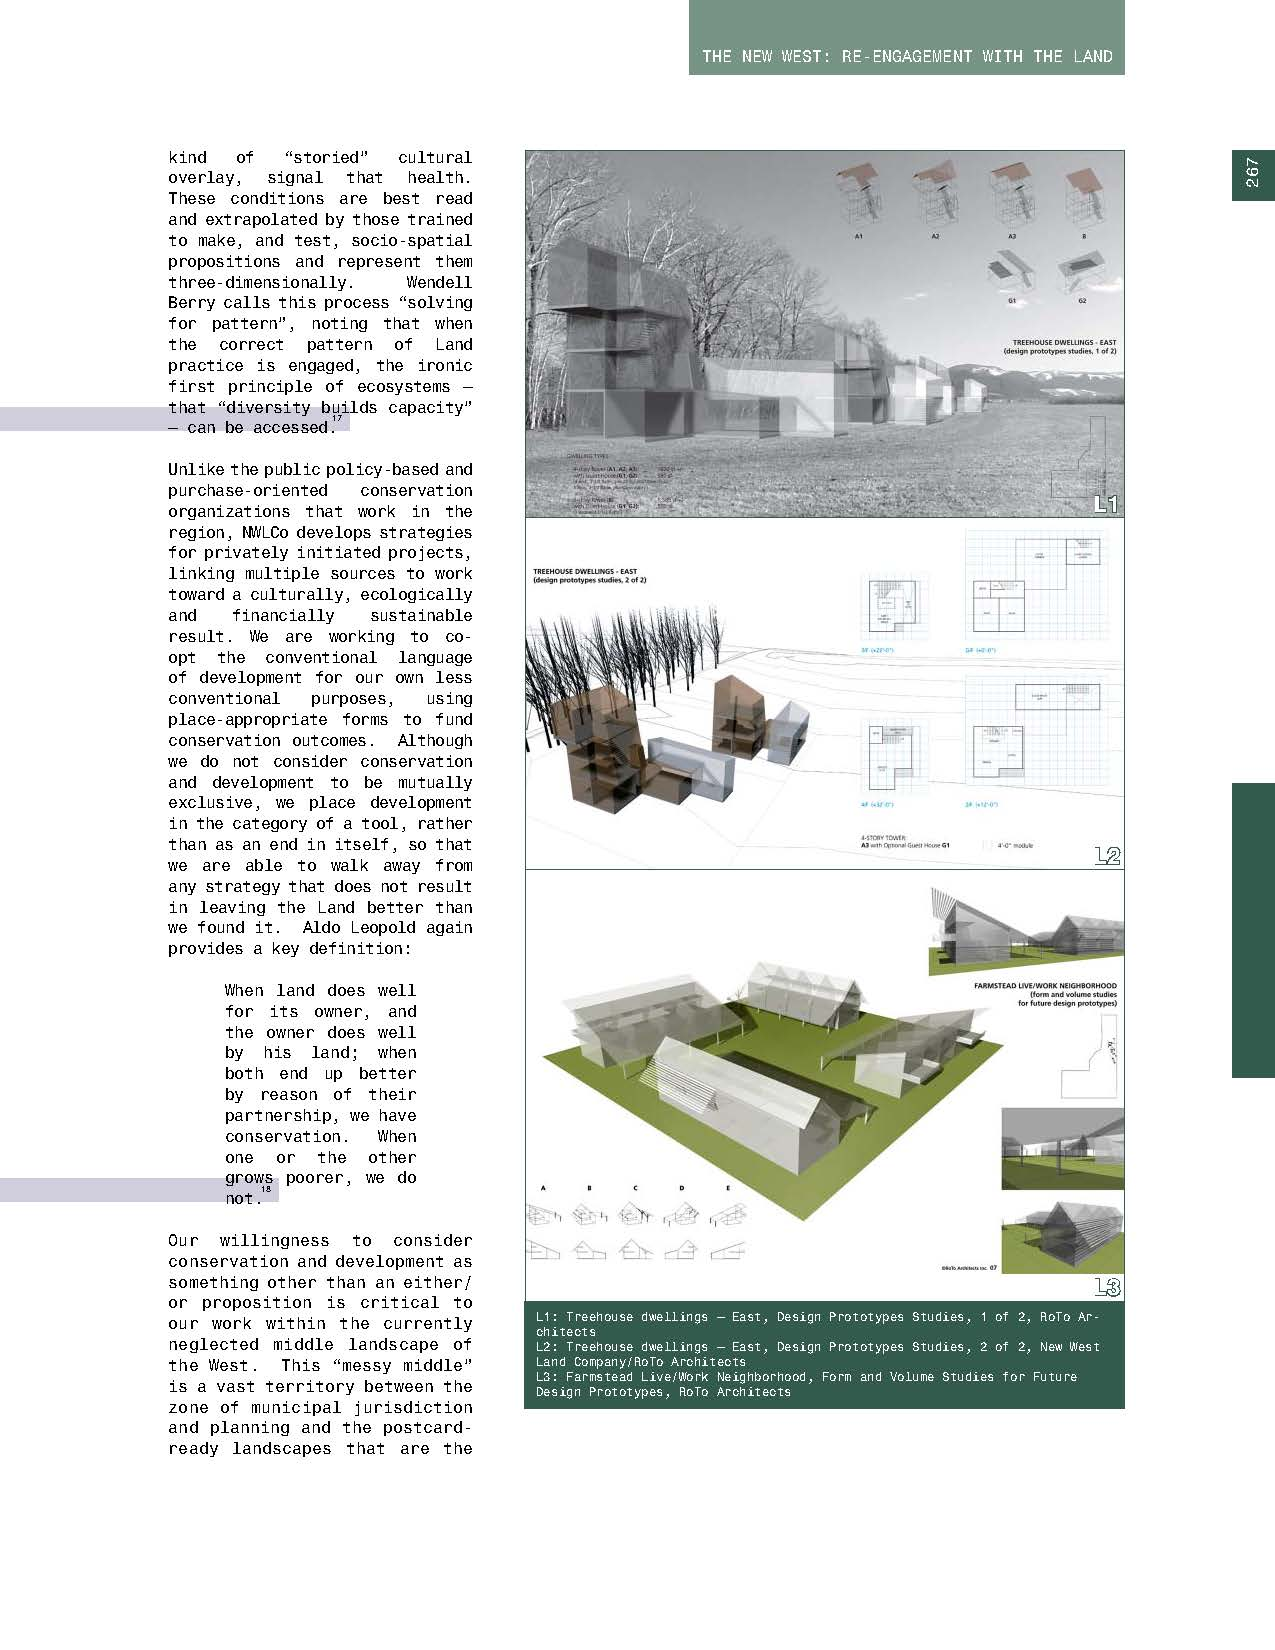 UT New West Land Co Article_Page_14.jpg